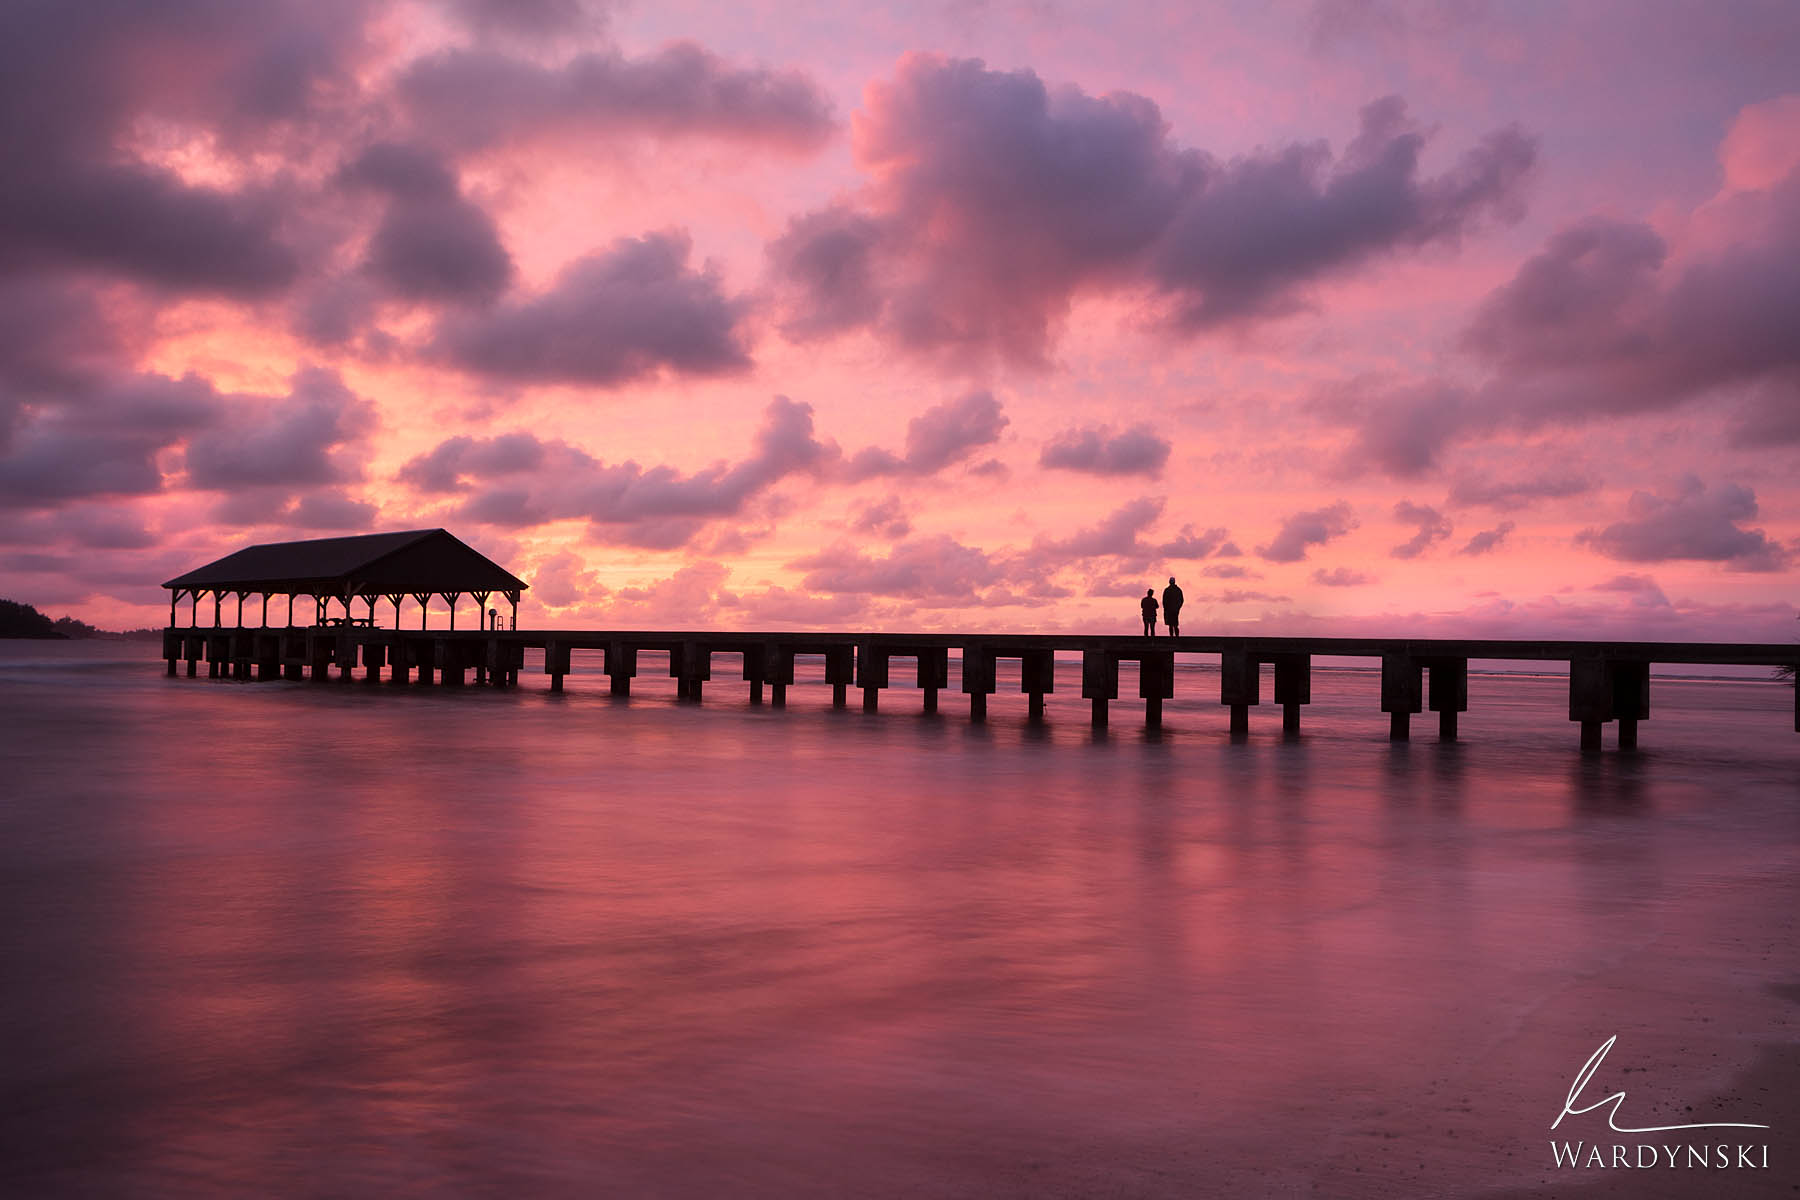 Fine Art Print | Limited Edition of 50  A couple watches a pink cotton candy sunset from the Hanalei Bay Pier on the island of...